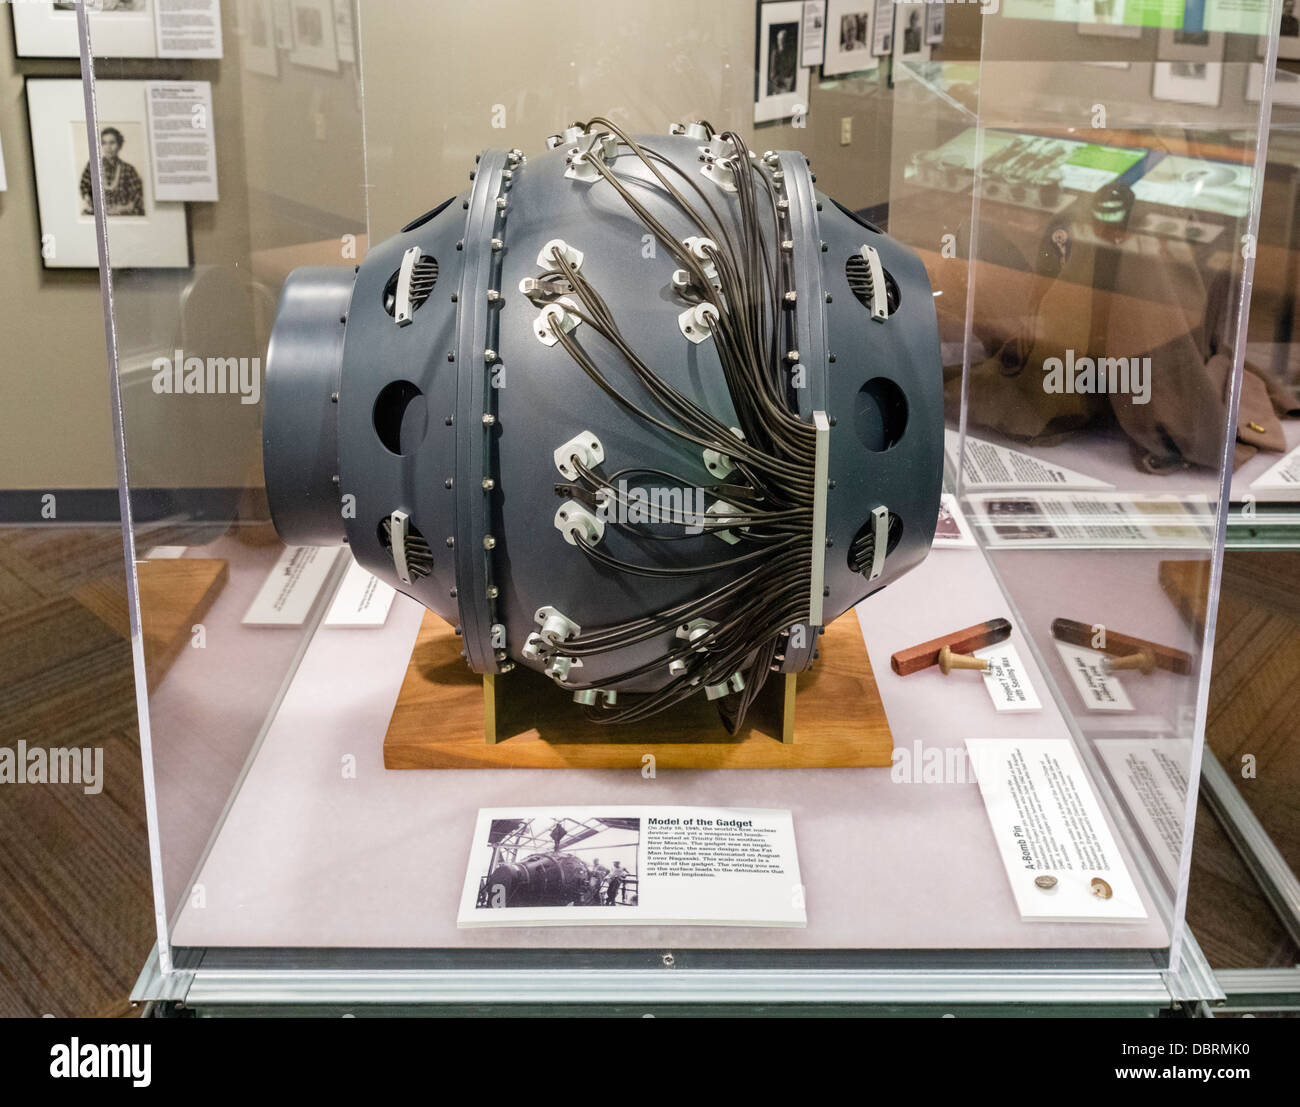 Scale model of 'The Gadget', first nuclear device tested at Trinity Site in 1945, Bradbury Science Museum, - Stock Image